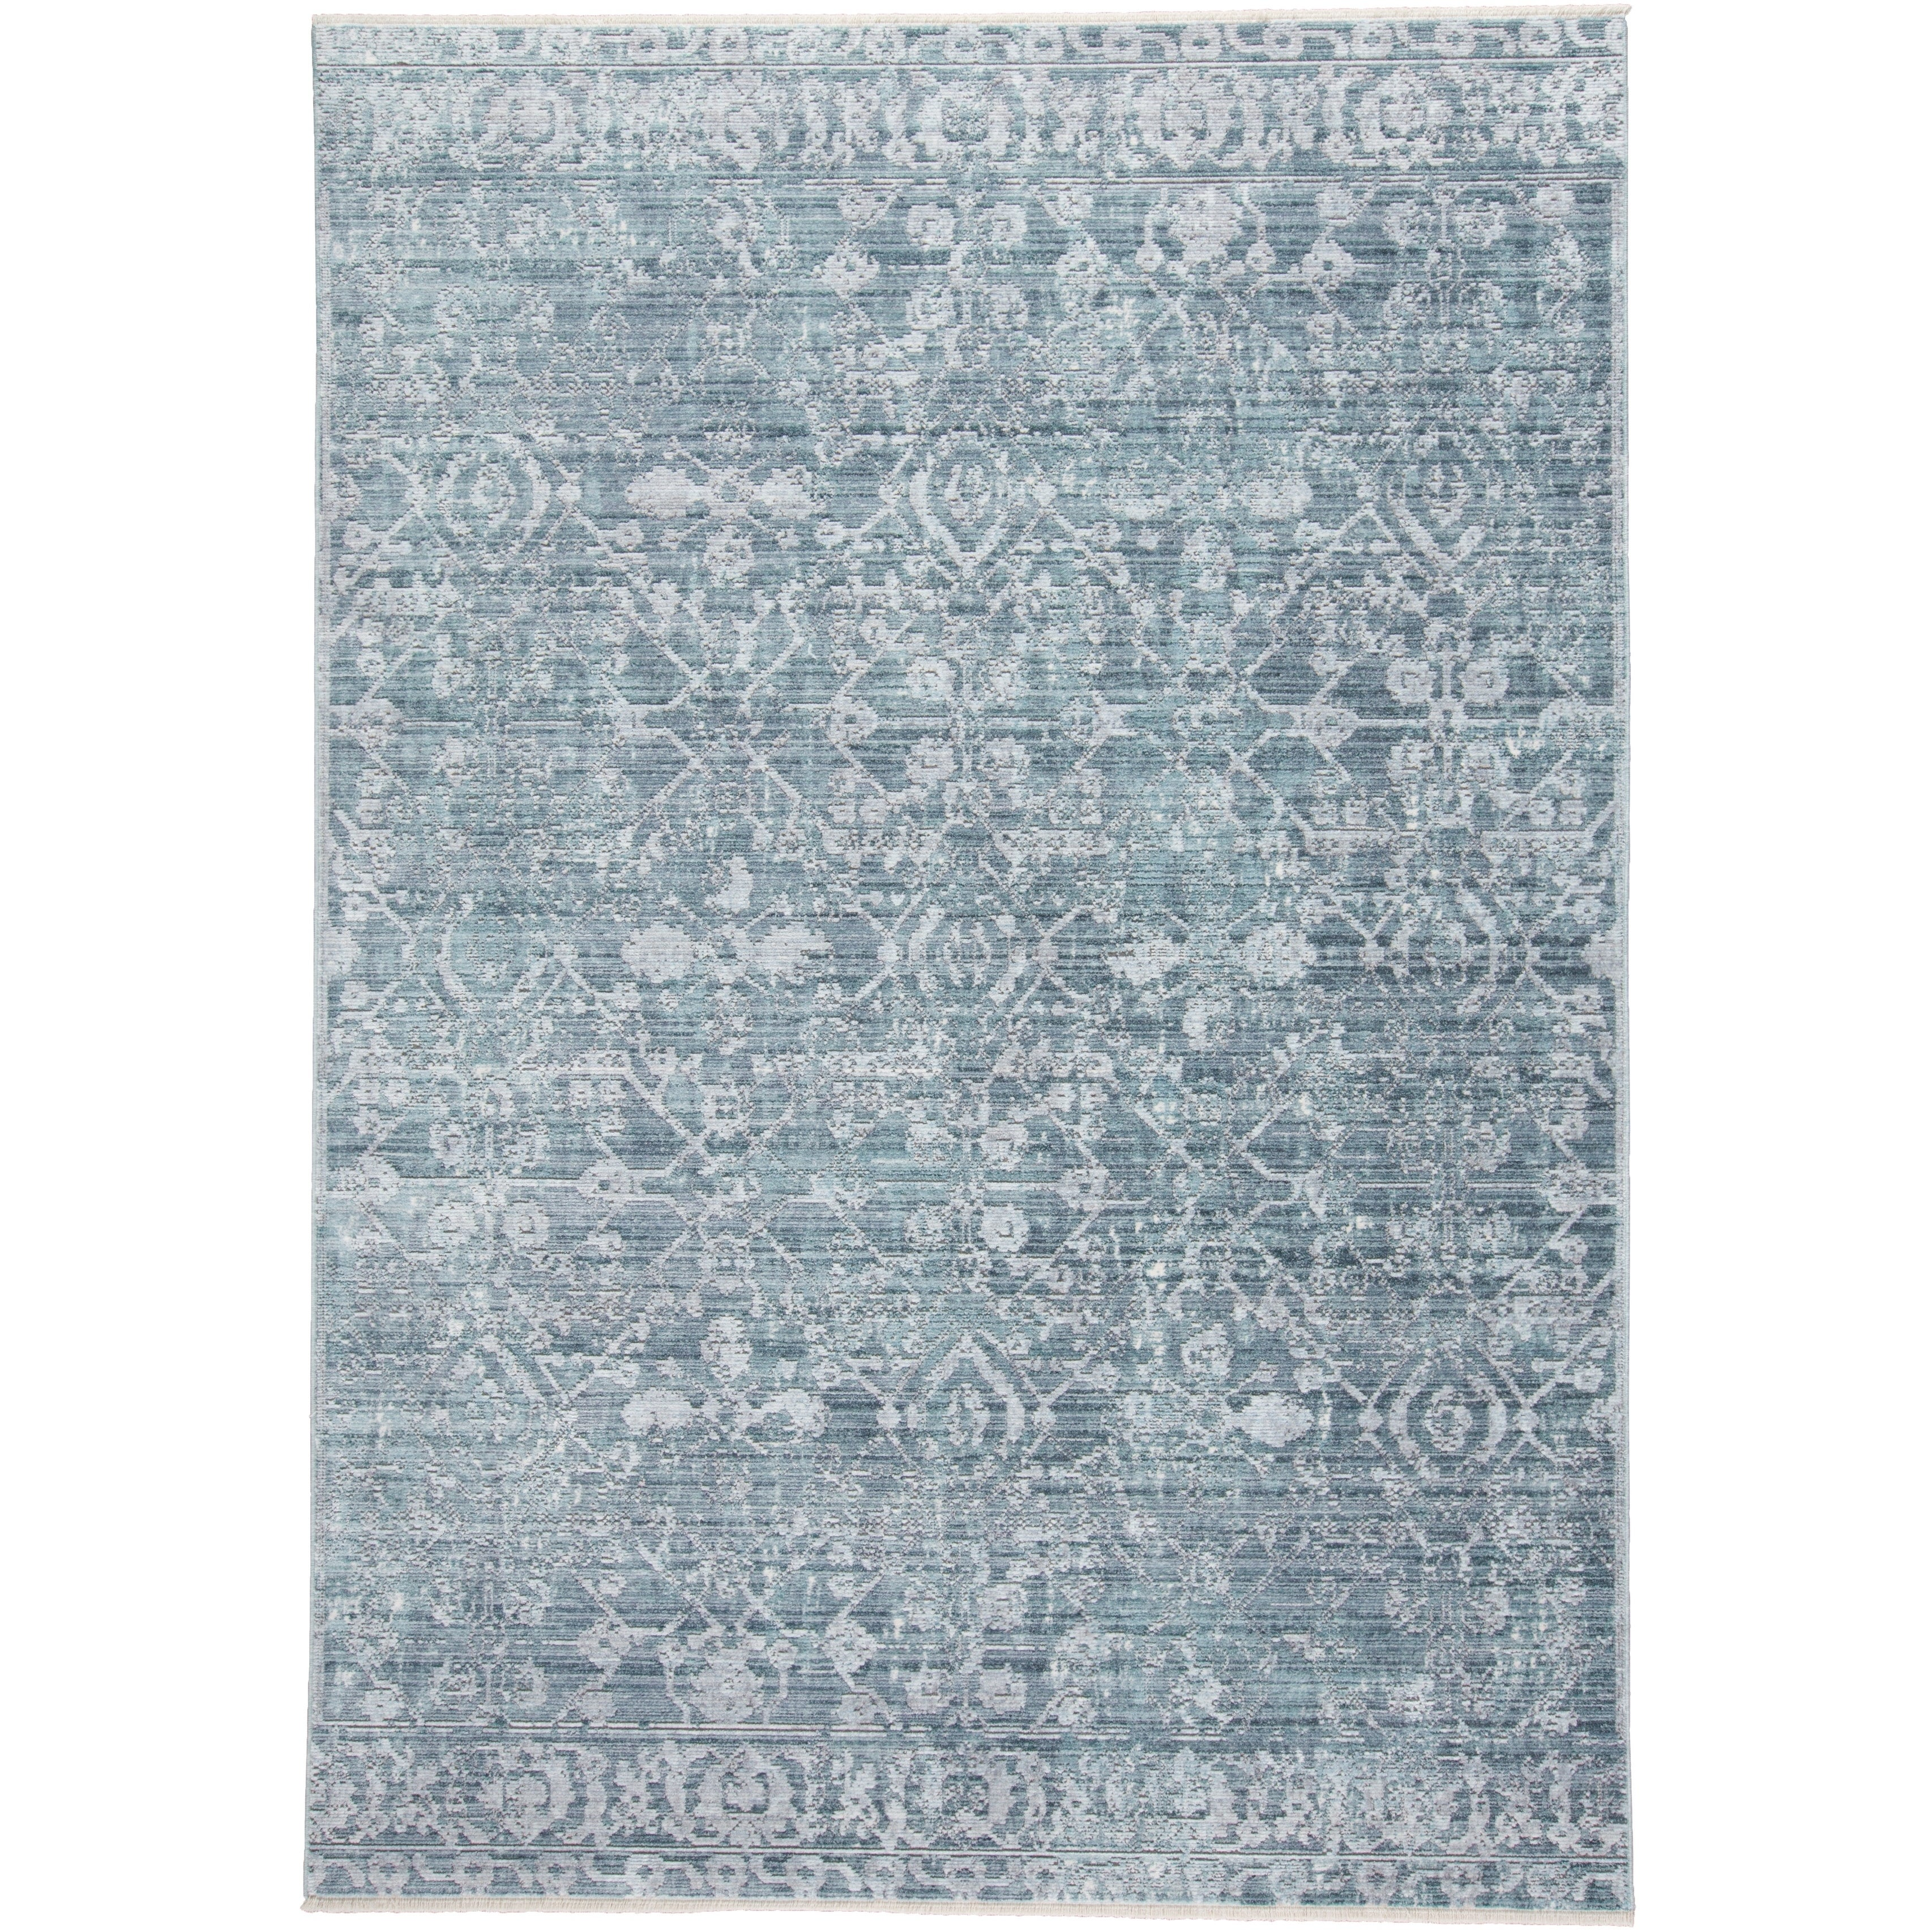 Grand Bazaar Tirza Blue/Turquoise - 5 x 8 (Blue/Turquoise - 5 x 8)